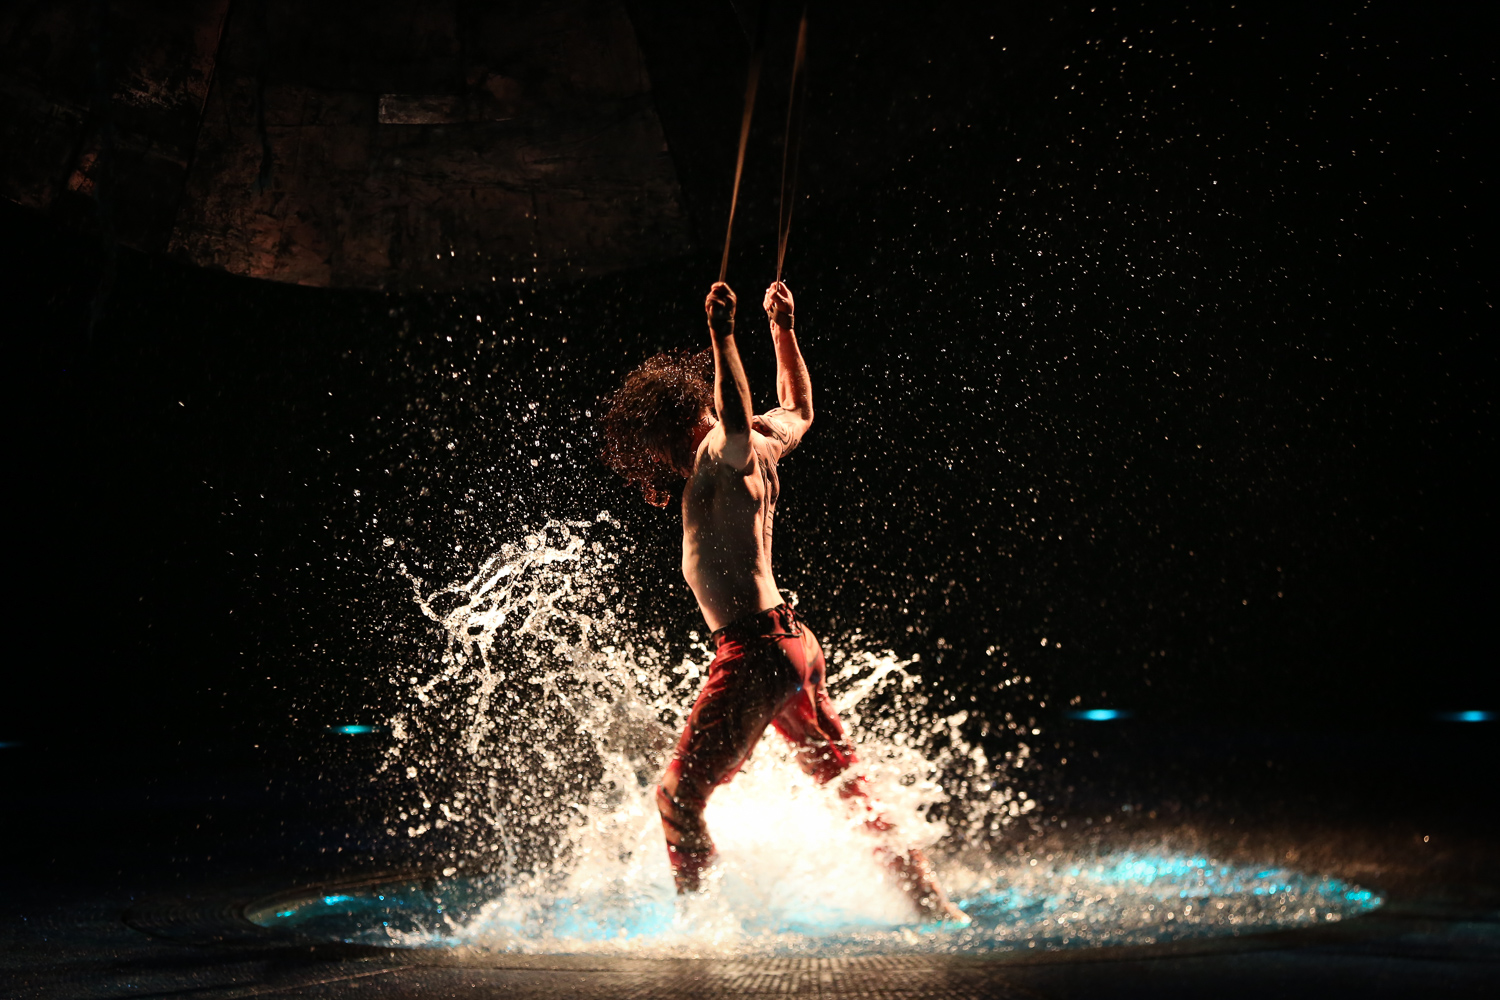 The water art in the show is breathtaking! (Image: Amanda Andrade-Rhoades/ DC Refined)